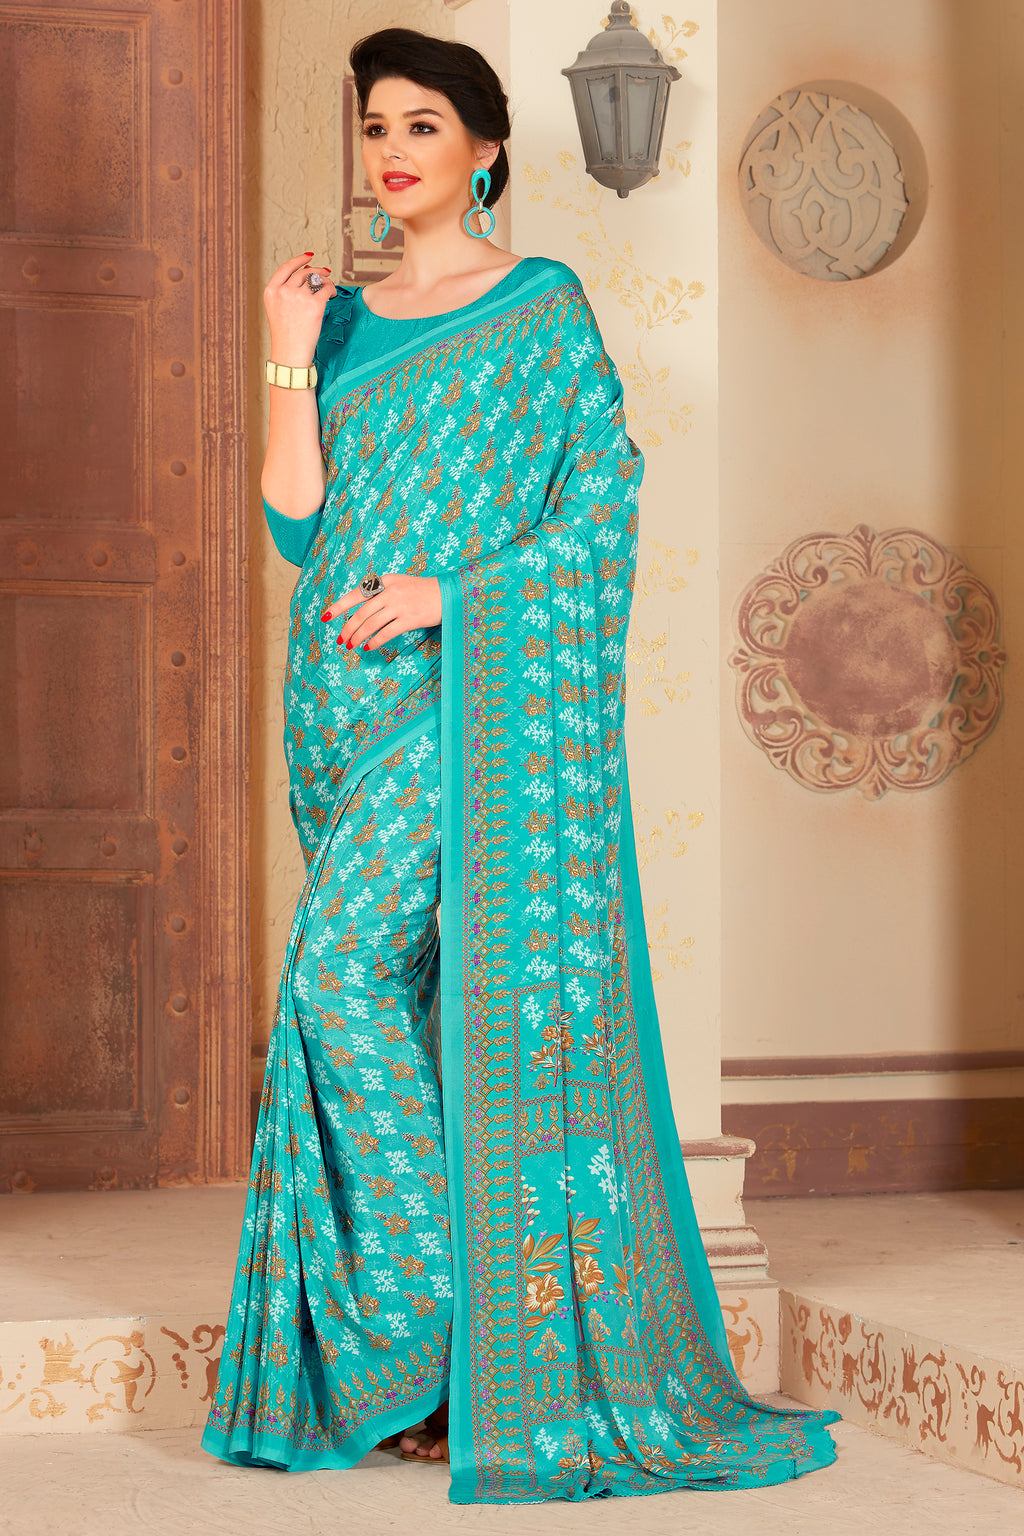 Aqua Blue Color Crepe  Kitty Party Sarees NYF-8060